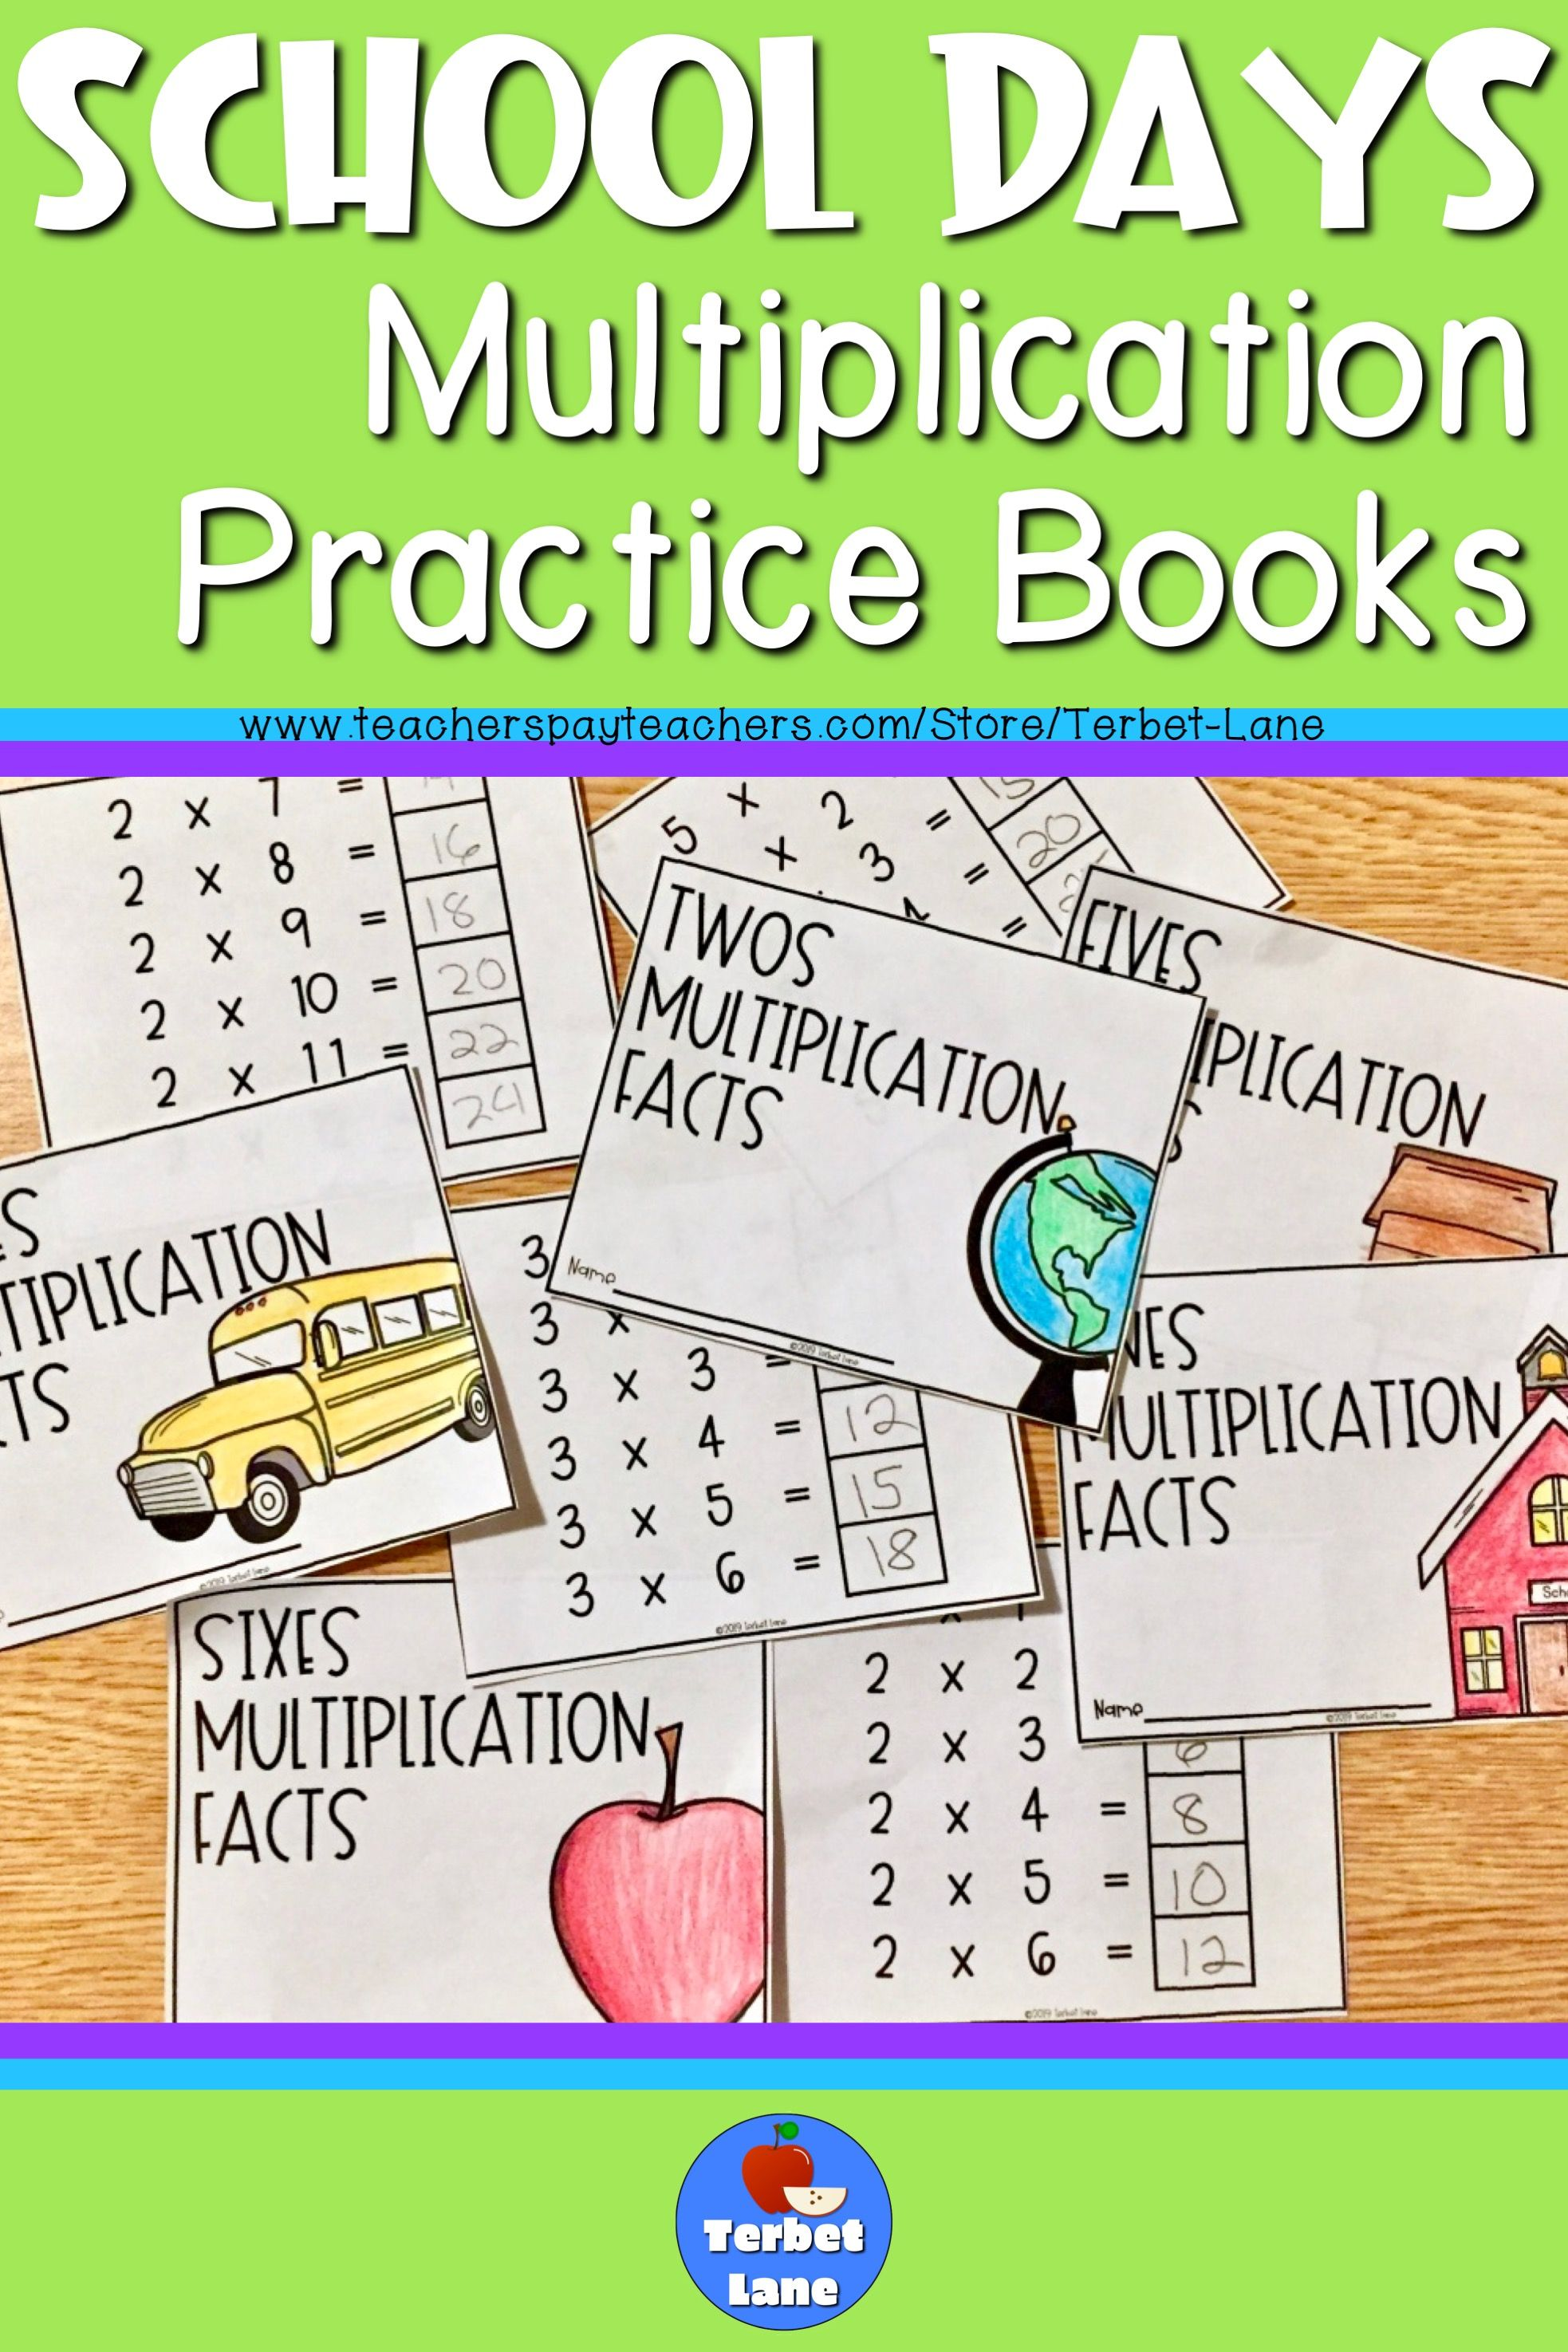 School Days Multiplication Facts Practice Books Distance